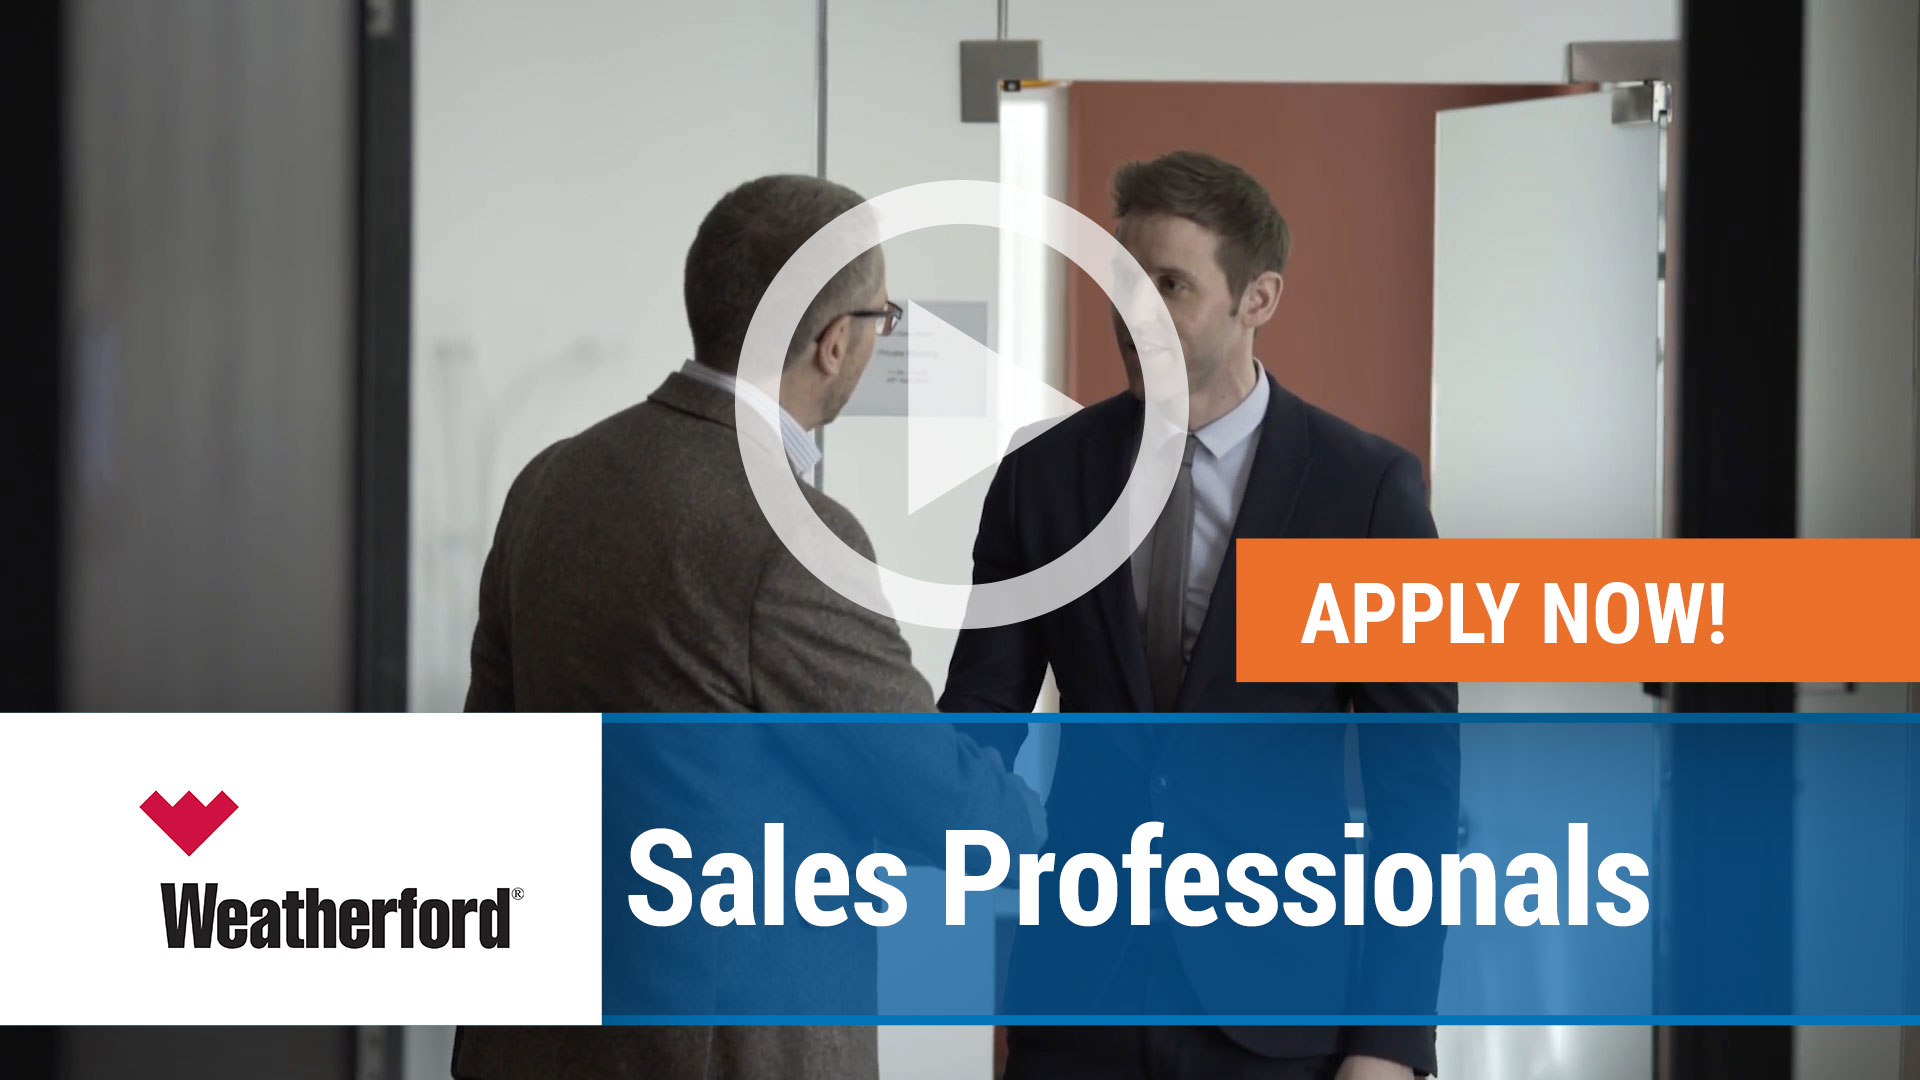 Watch our careers video for available job opening Weatherford Sales Professionals in Houston, TX, USA